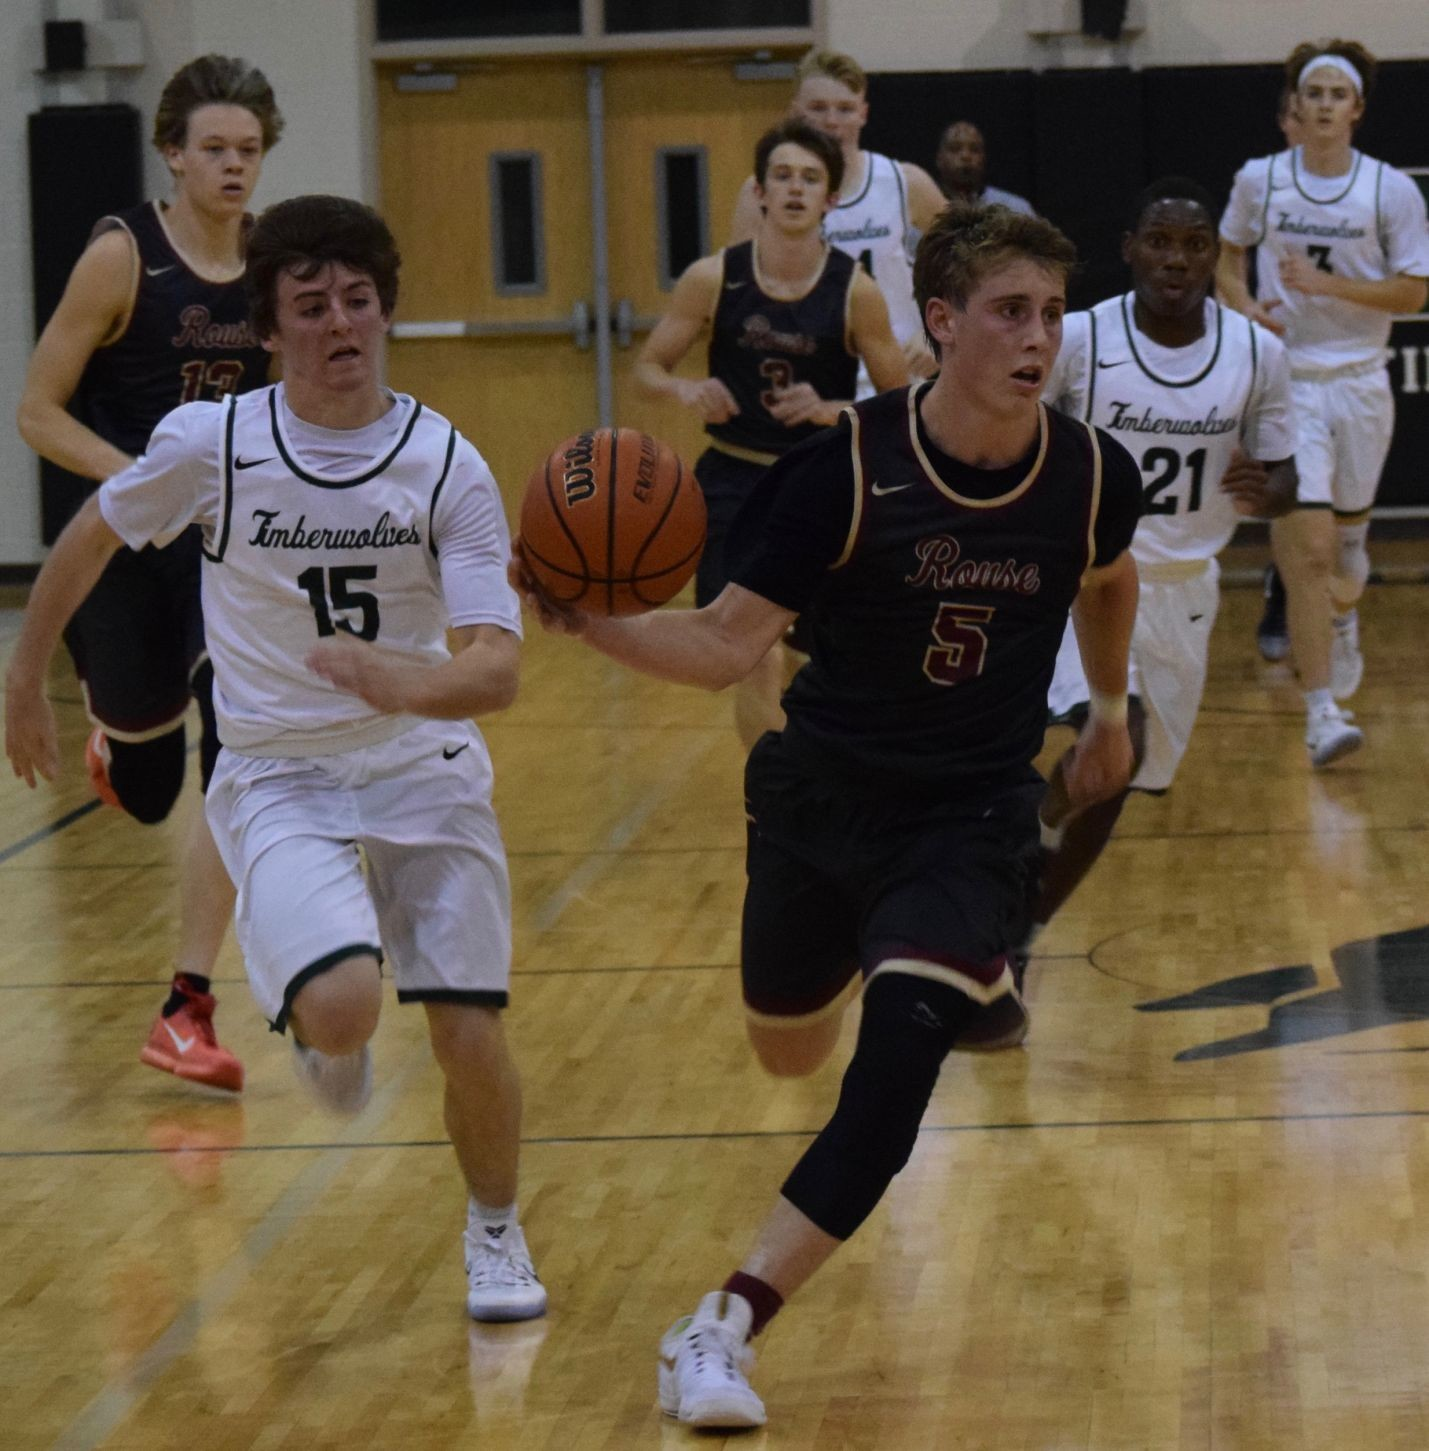 Kyle Mitchell scored a game-high 26 points for Rouse, which beat Cedar Park 63-52 for its eighth straight win Tuesday night.